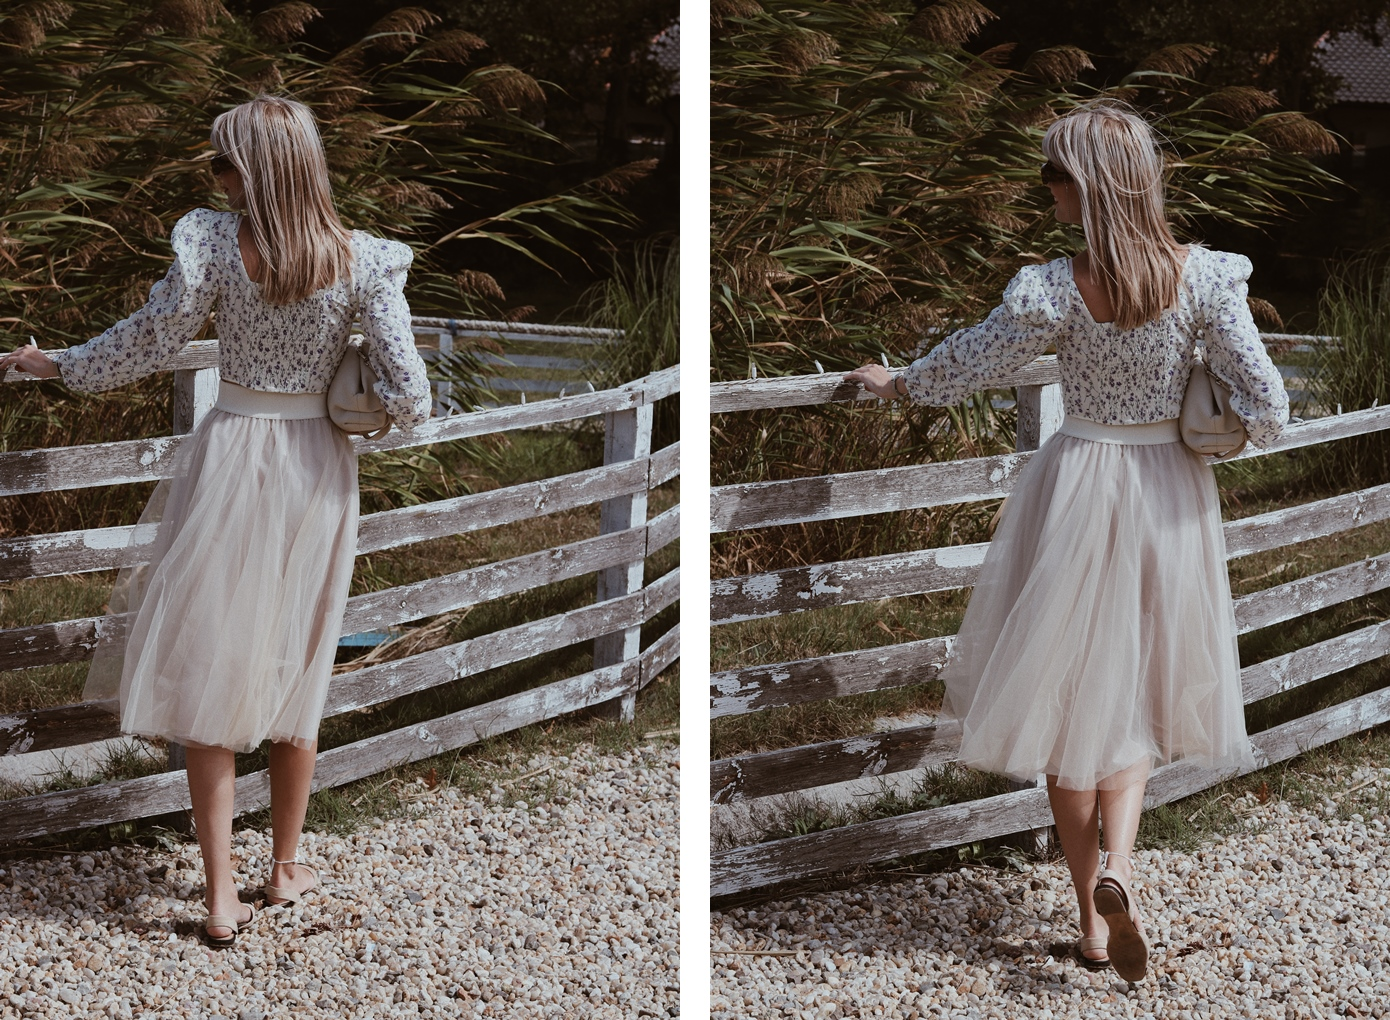 Outfit, fashion blogger, tulle skirt, floral blouse